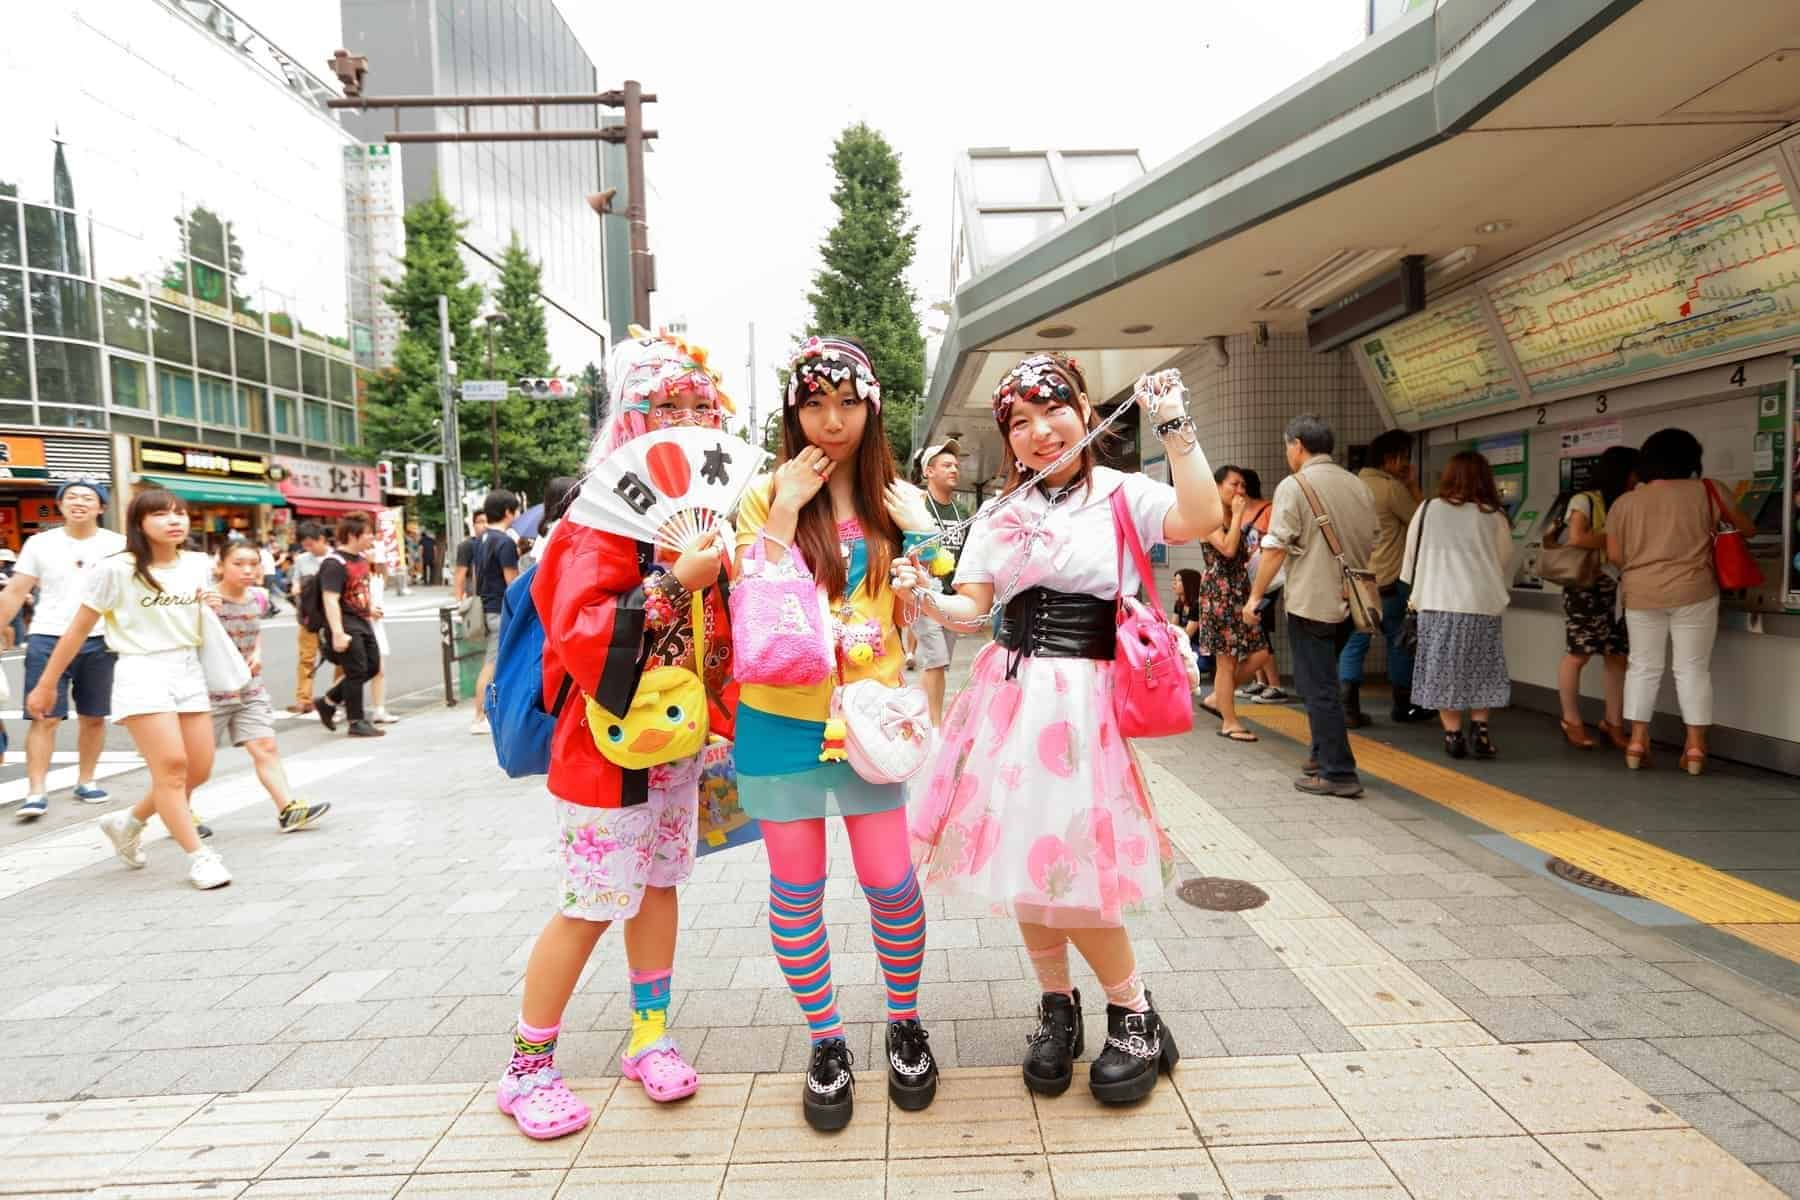 Every Sunday each week, teens and young adults meet in Harajuku to show off a variety of clothing styles in Tokyo, Japan. Also known as Harajuku fashion.